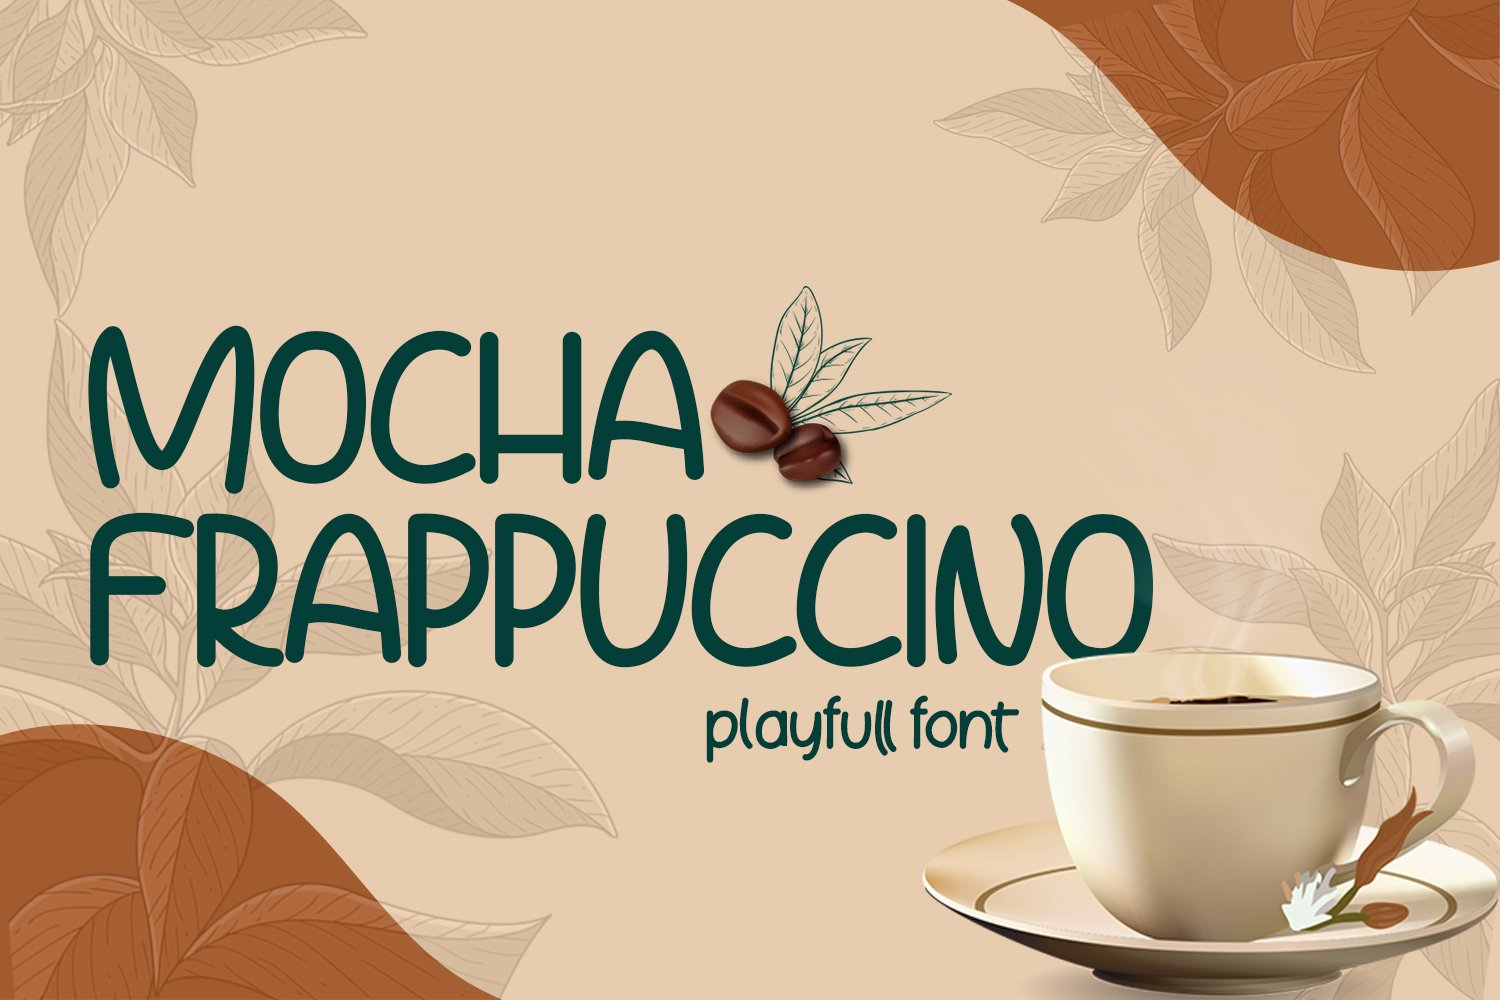 Mocha Frappuccino Playfull Font example image 1